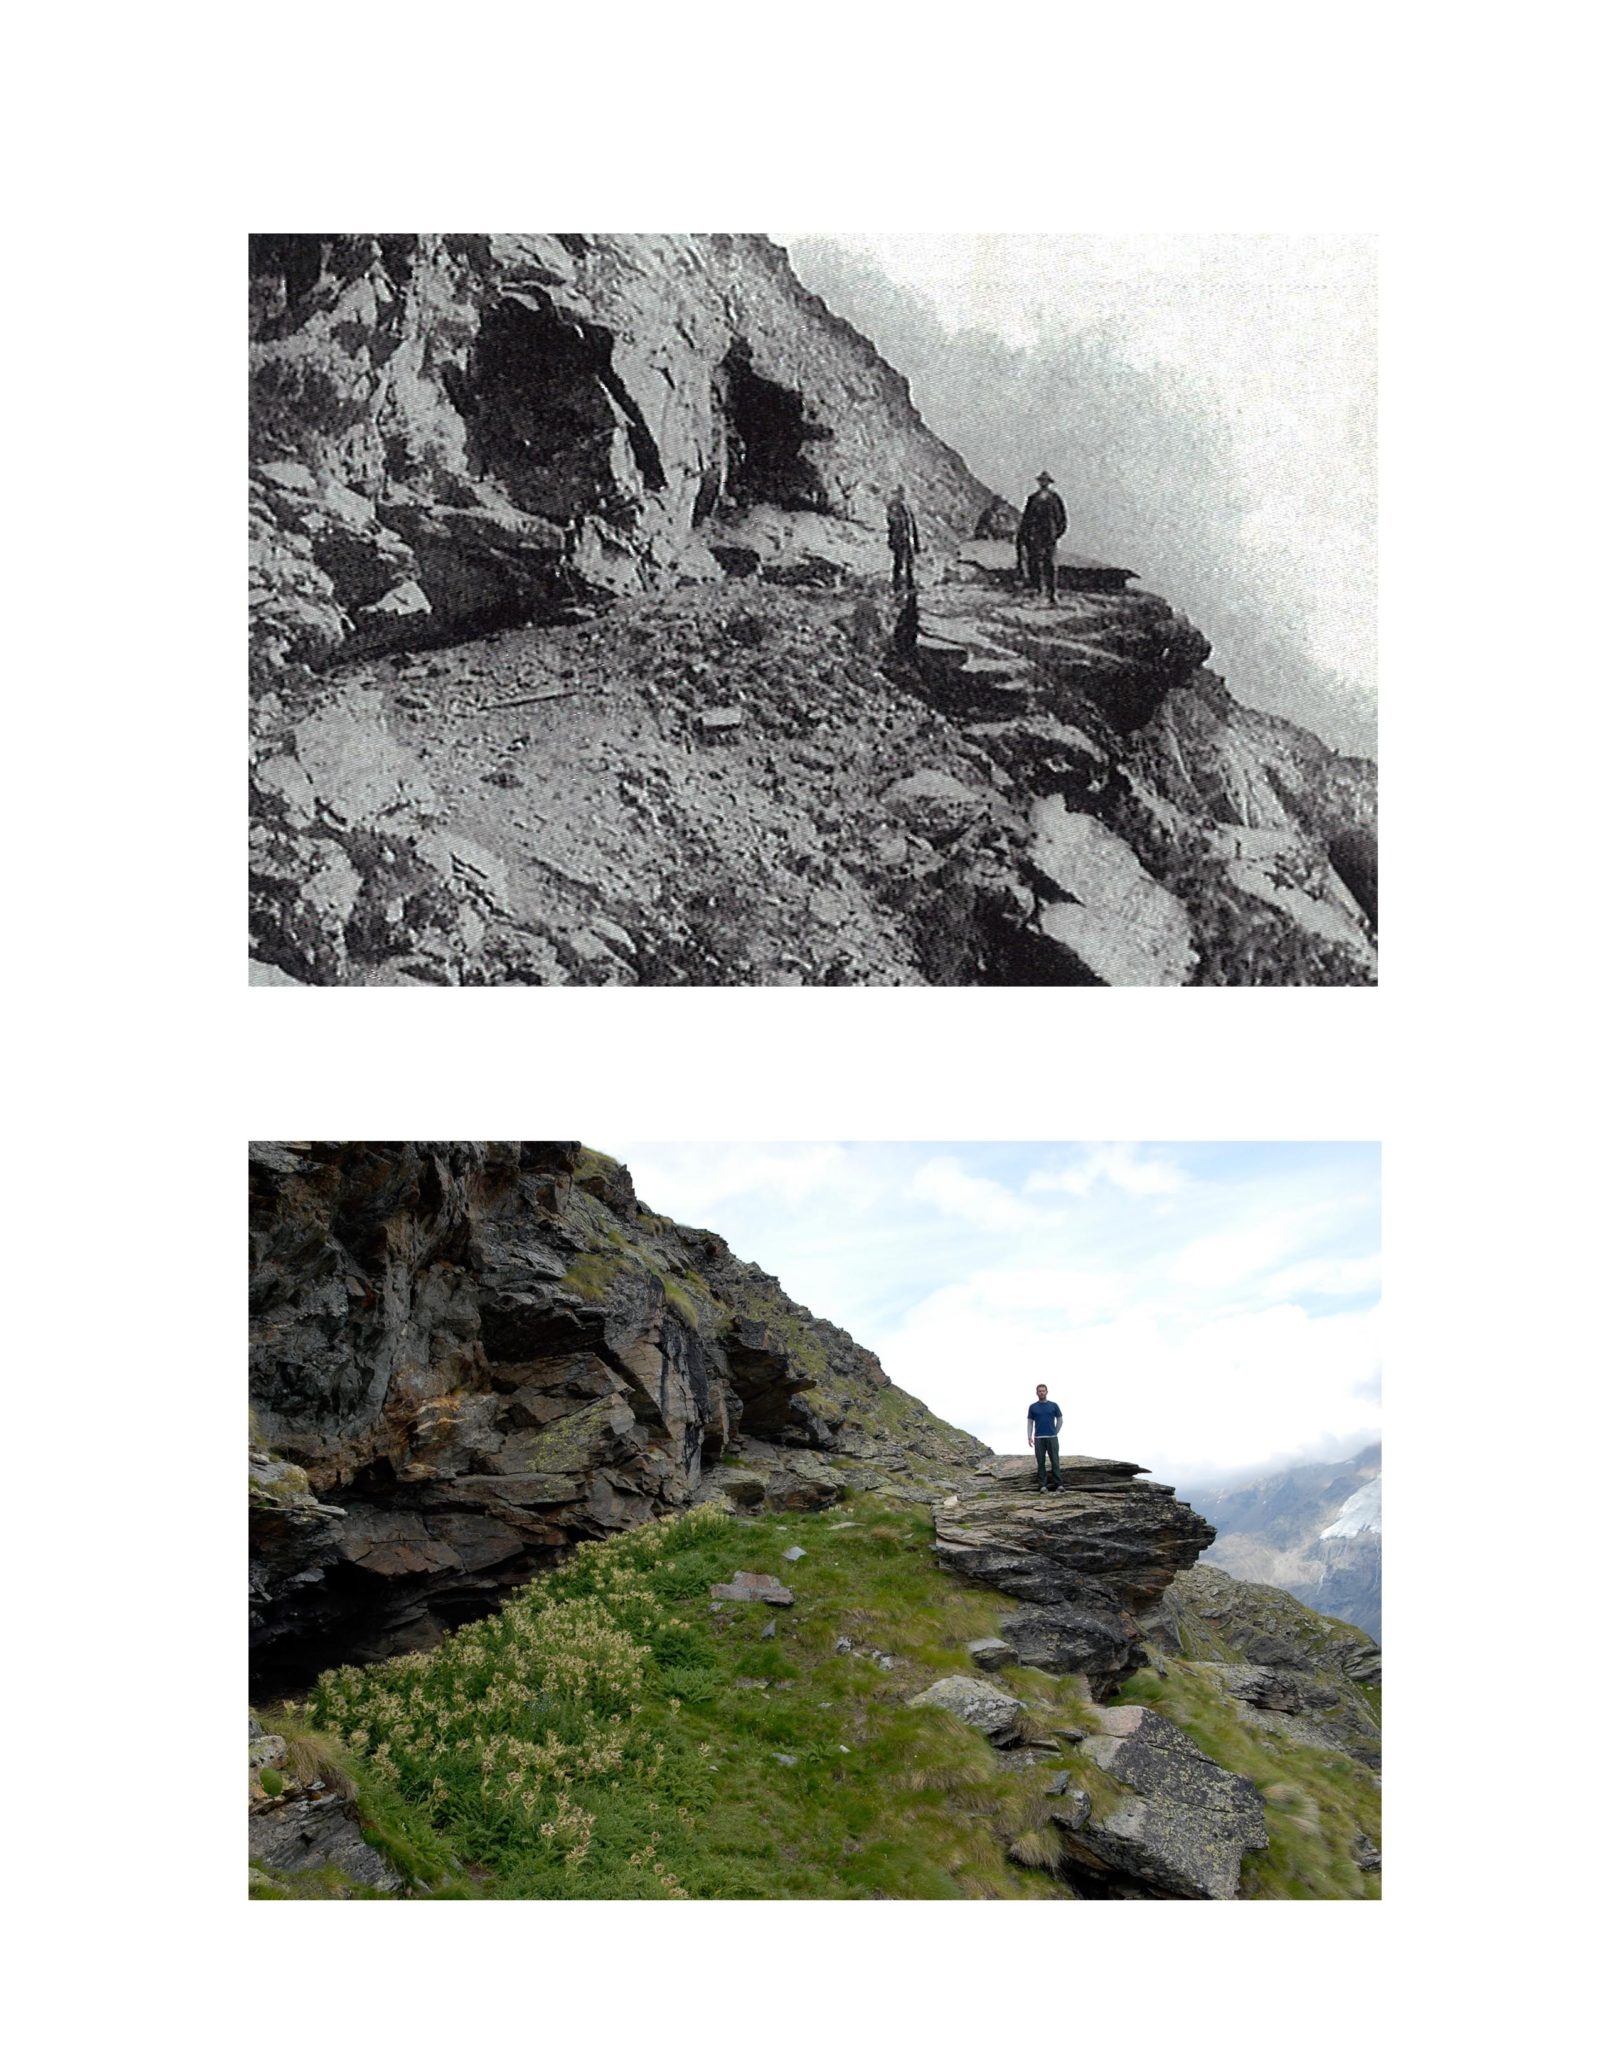 The initial bivouac used during the first ascent of the Weisshorn in 1861.  The top was a photo taken in 1867; the bottom was taken in 2011.